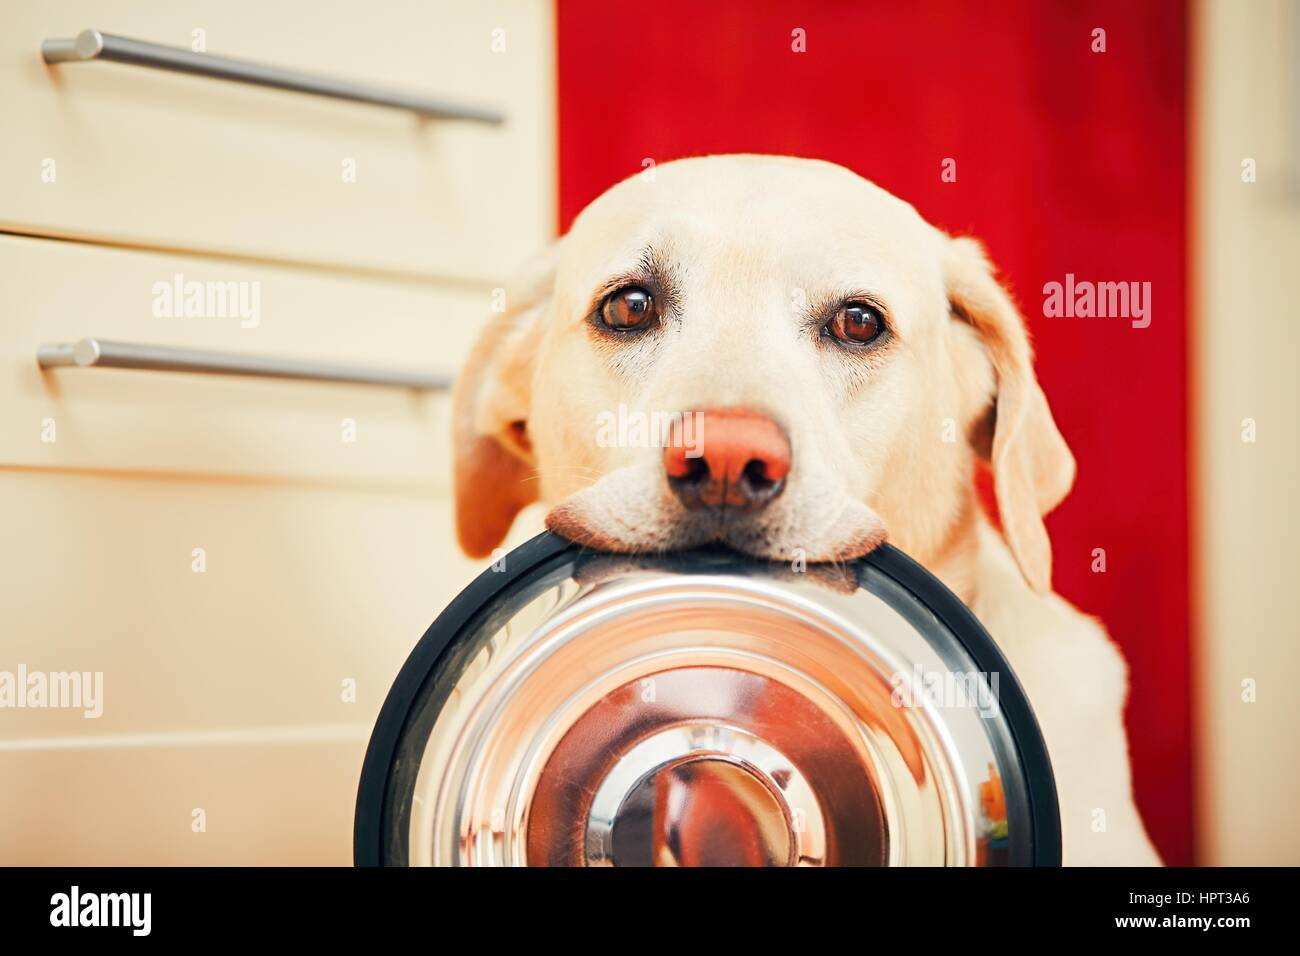 Domestic life with dog. Hungry dog with sad eyes is waiting for feeding in home kitchen. Adorable yellow labrador - Stock Image